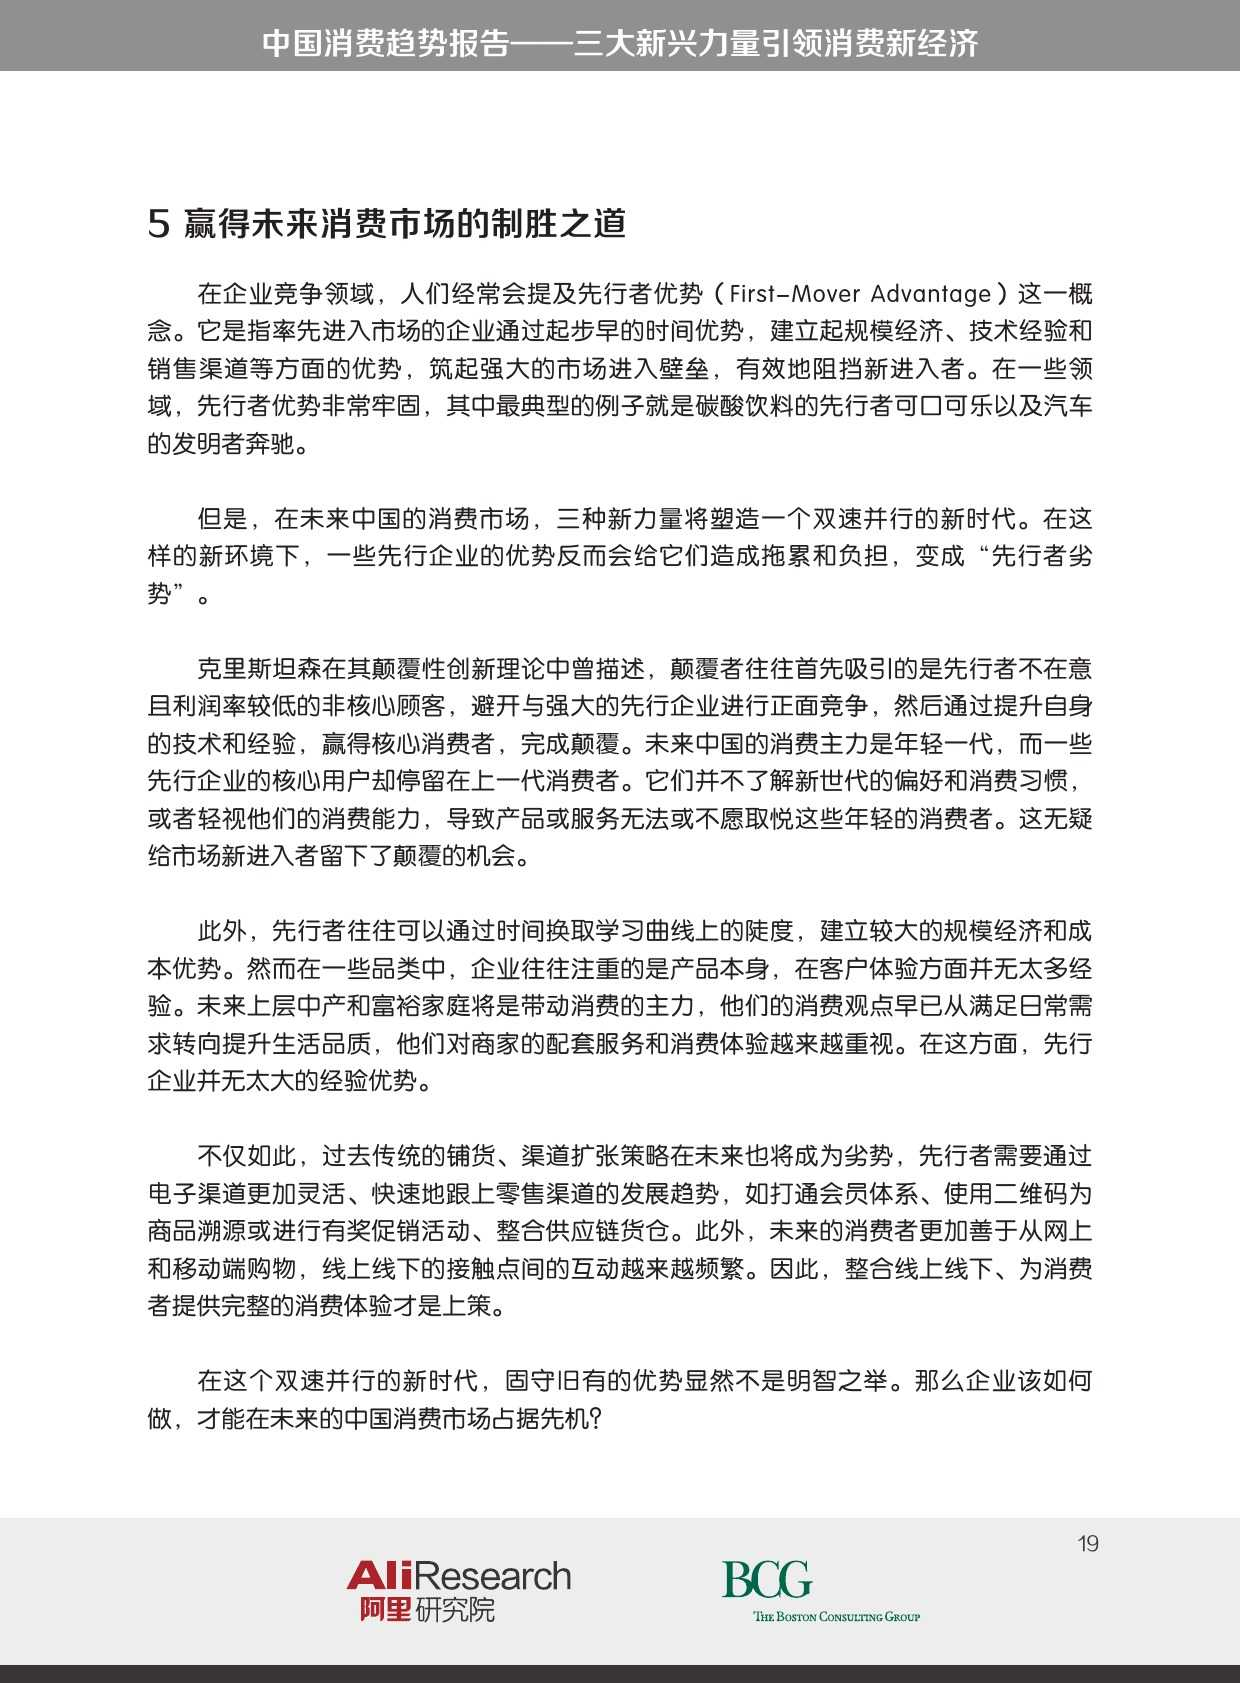 BCG_The_New_China_Playbook_Dec_2015_CHN_000019